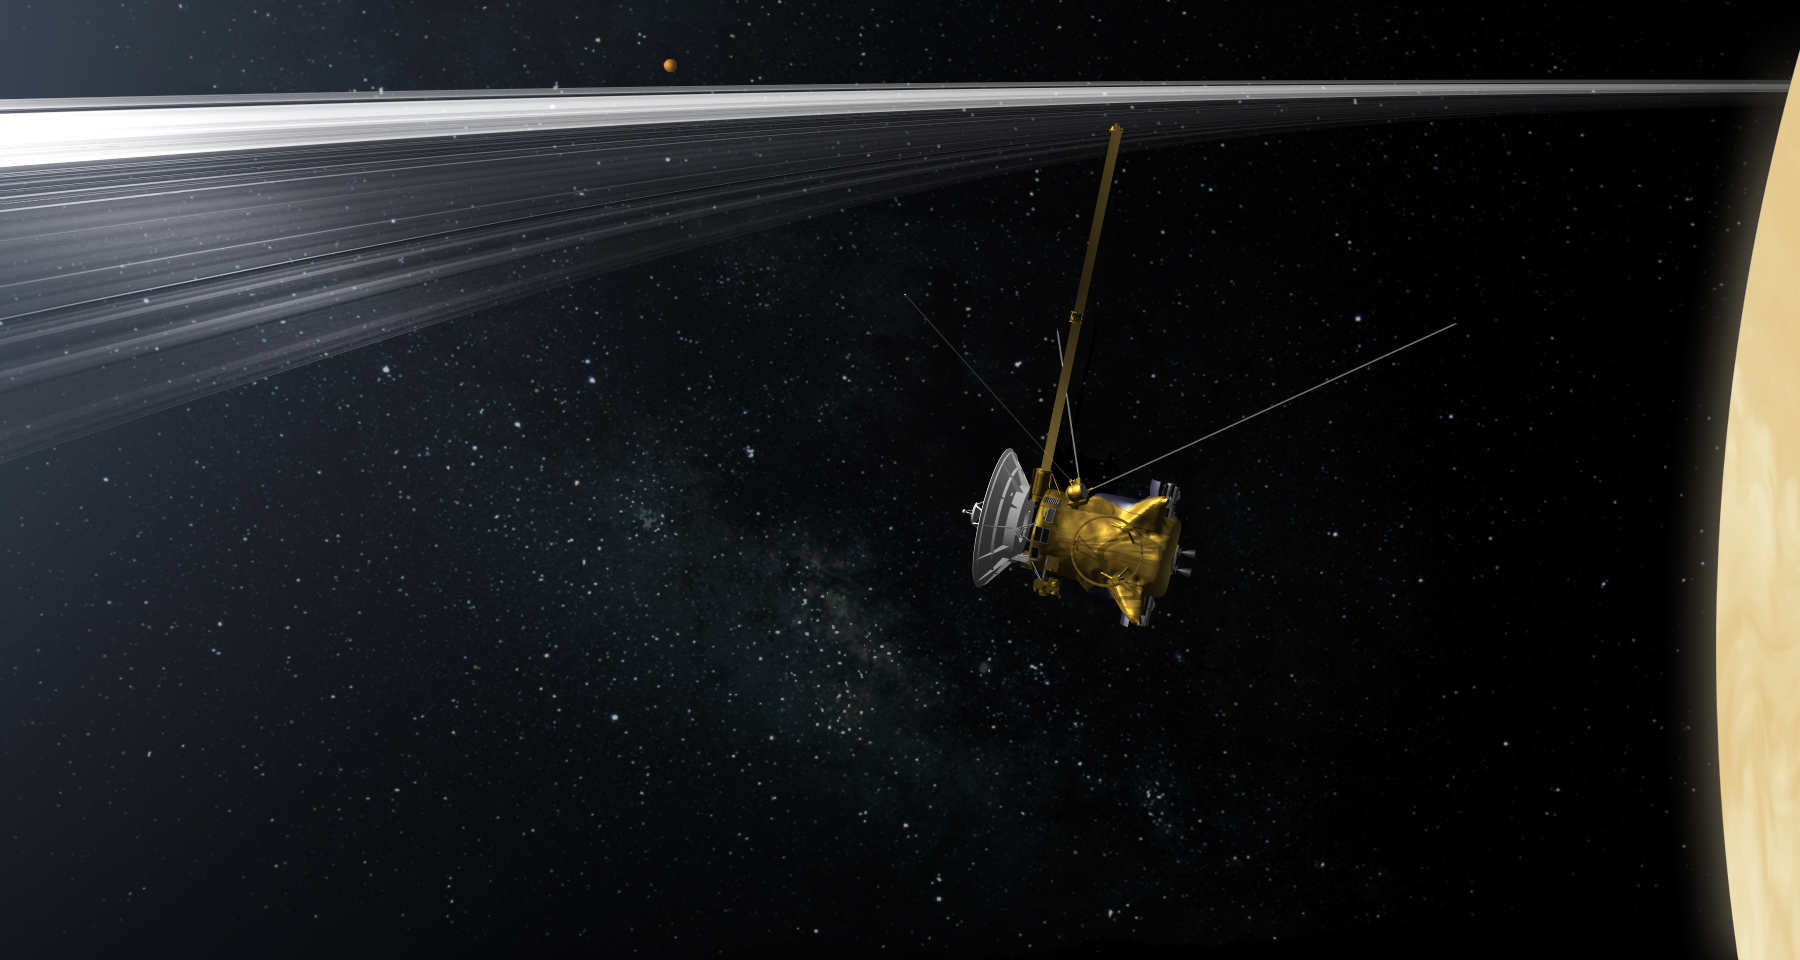 Cassini Names Final Mission Phase Its 'Grand Finale' | NASA